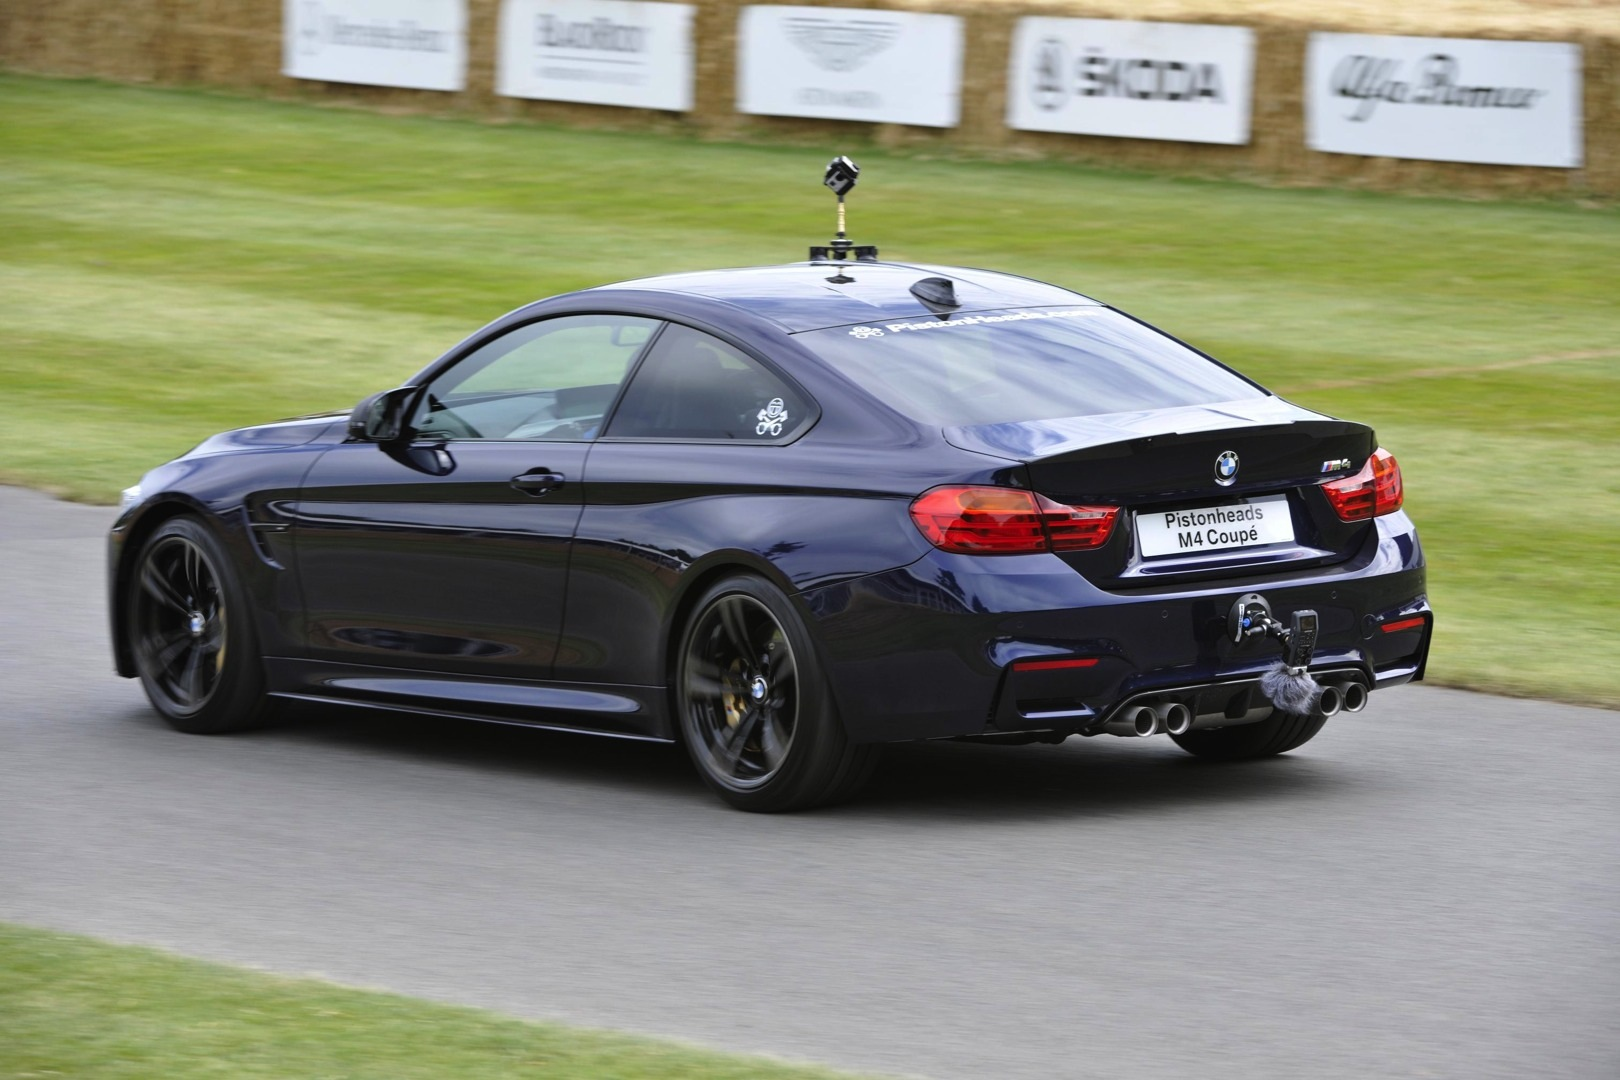 Tiff Needell Drives Unique Bmw M4 Coupe On The Goodwood